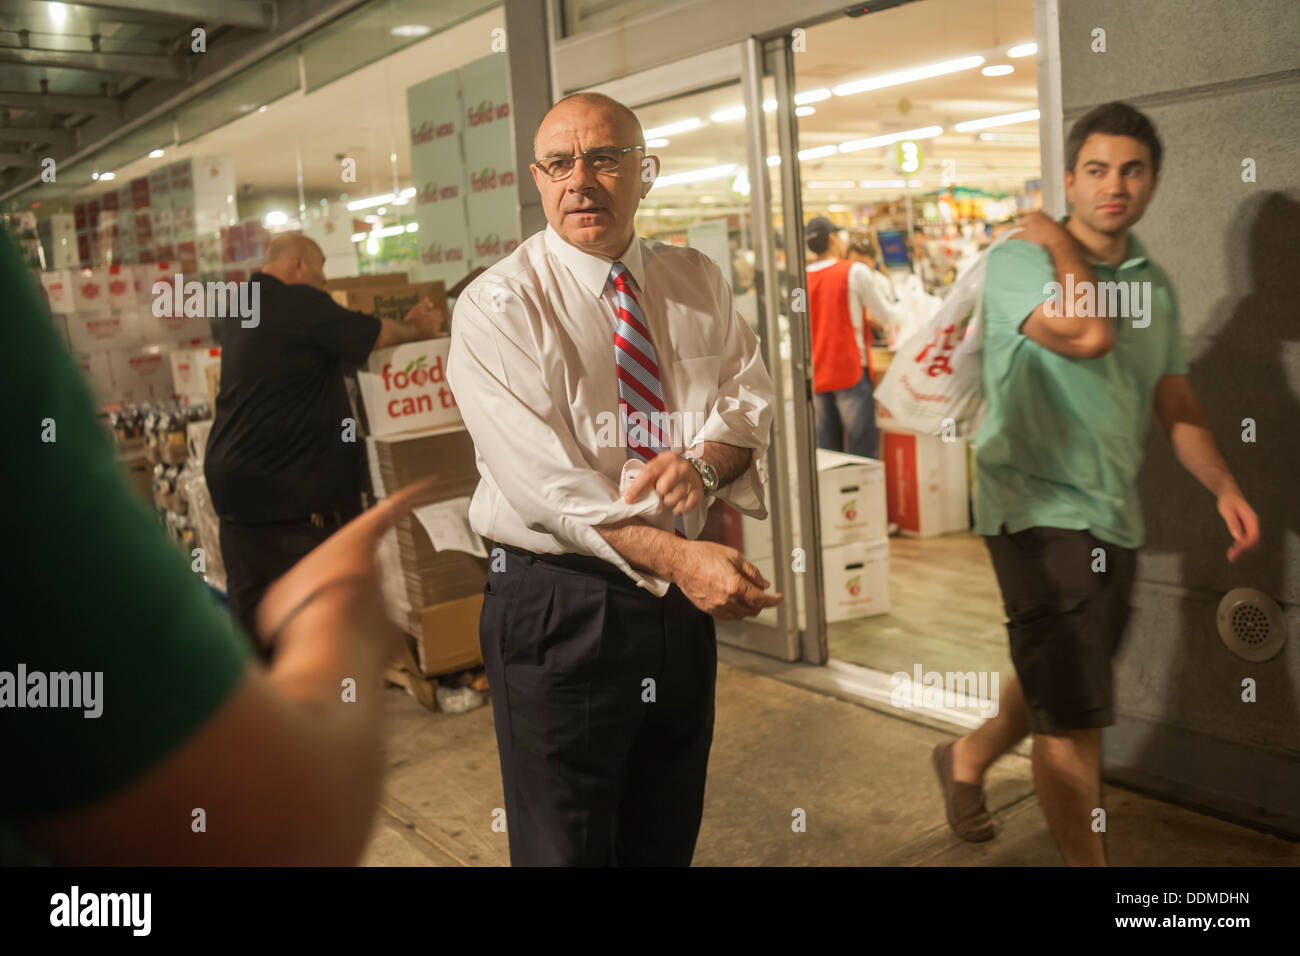 New York Mayoral candidate Sal Albanese campaigns - Stock Image